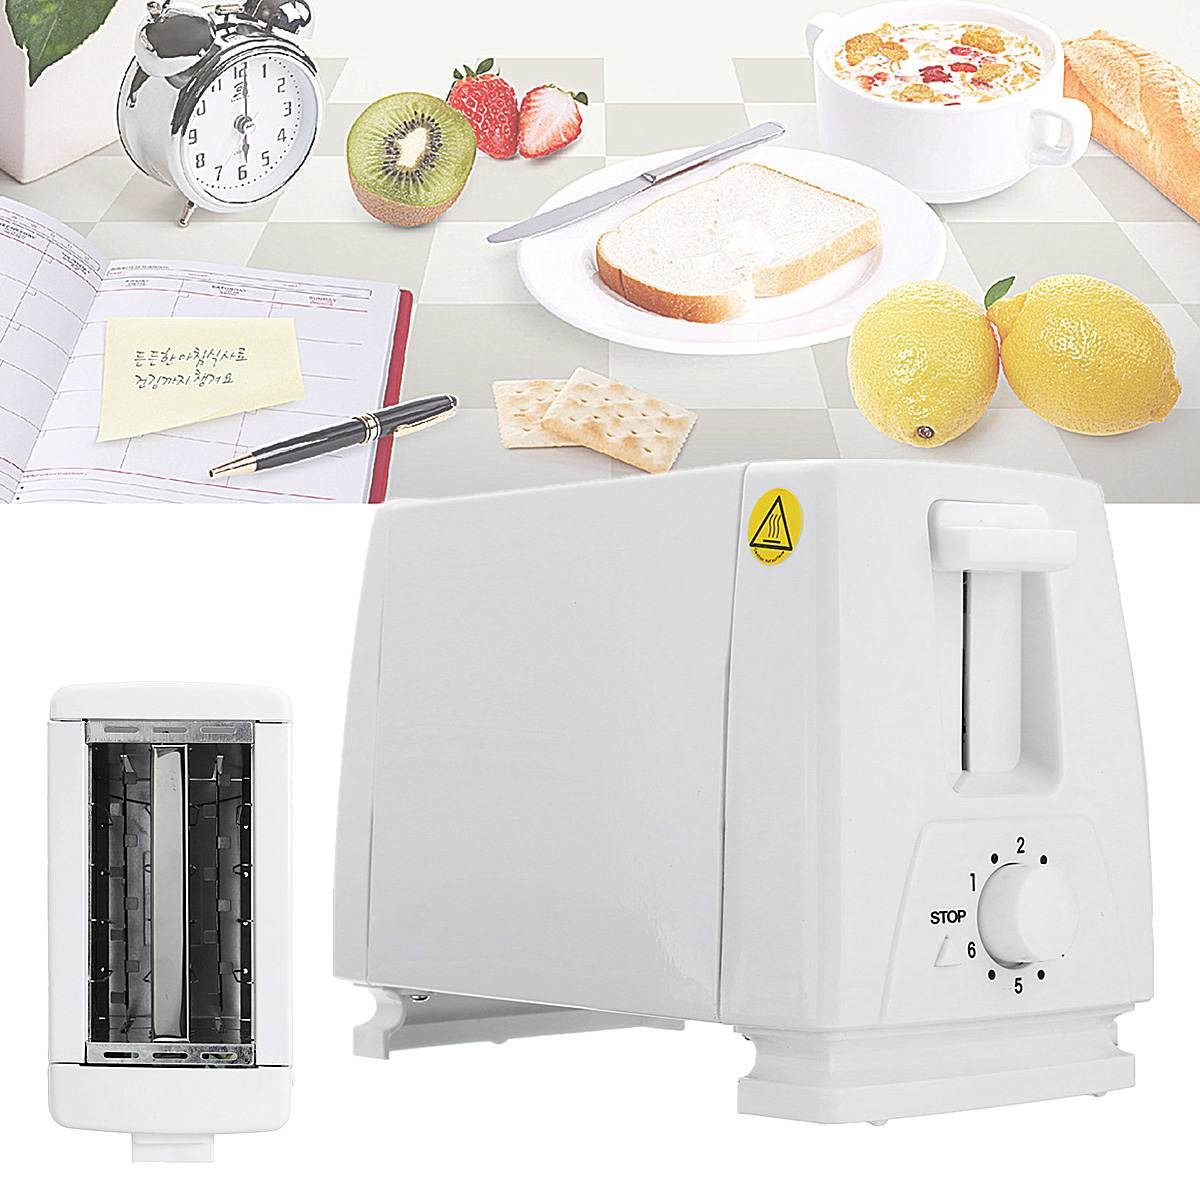 750W Stainless Steel 2 Slice Toaster Mini Automatic Electronic Bread Toaster Household Breakfast Baking Bread Machine750W Stainless Steel 2 Slice Toaster Mini Automatic Electronic Bread Toaster Household Breakfast Baking Bread Machine